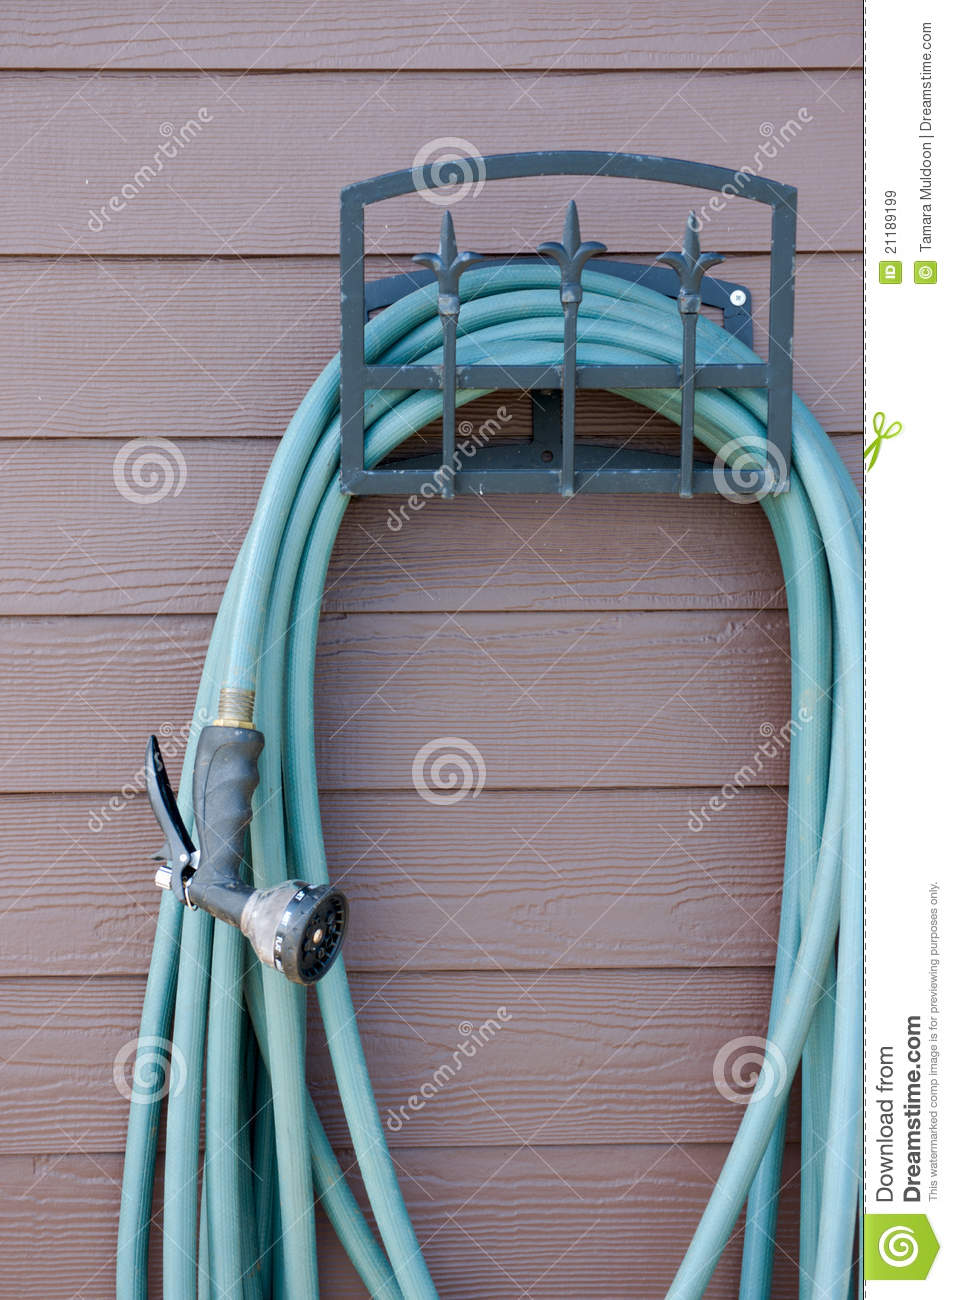 Garden hose with sprayer